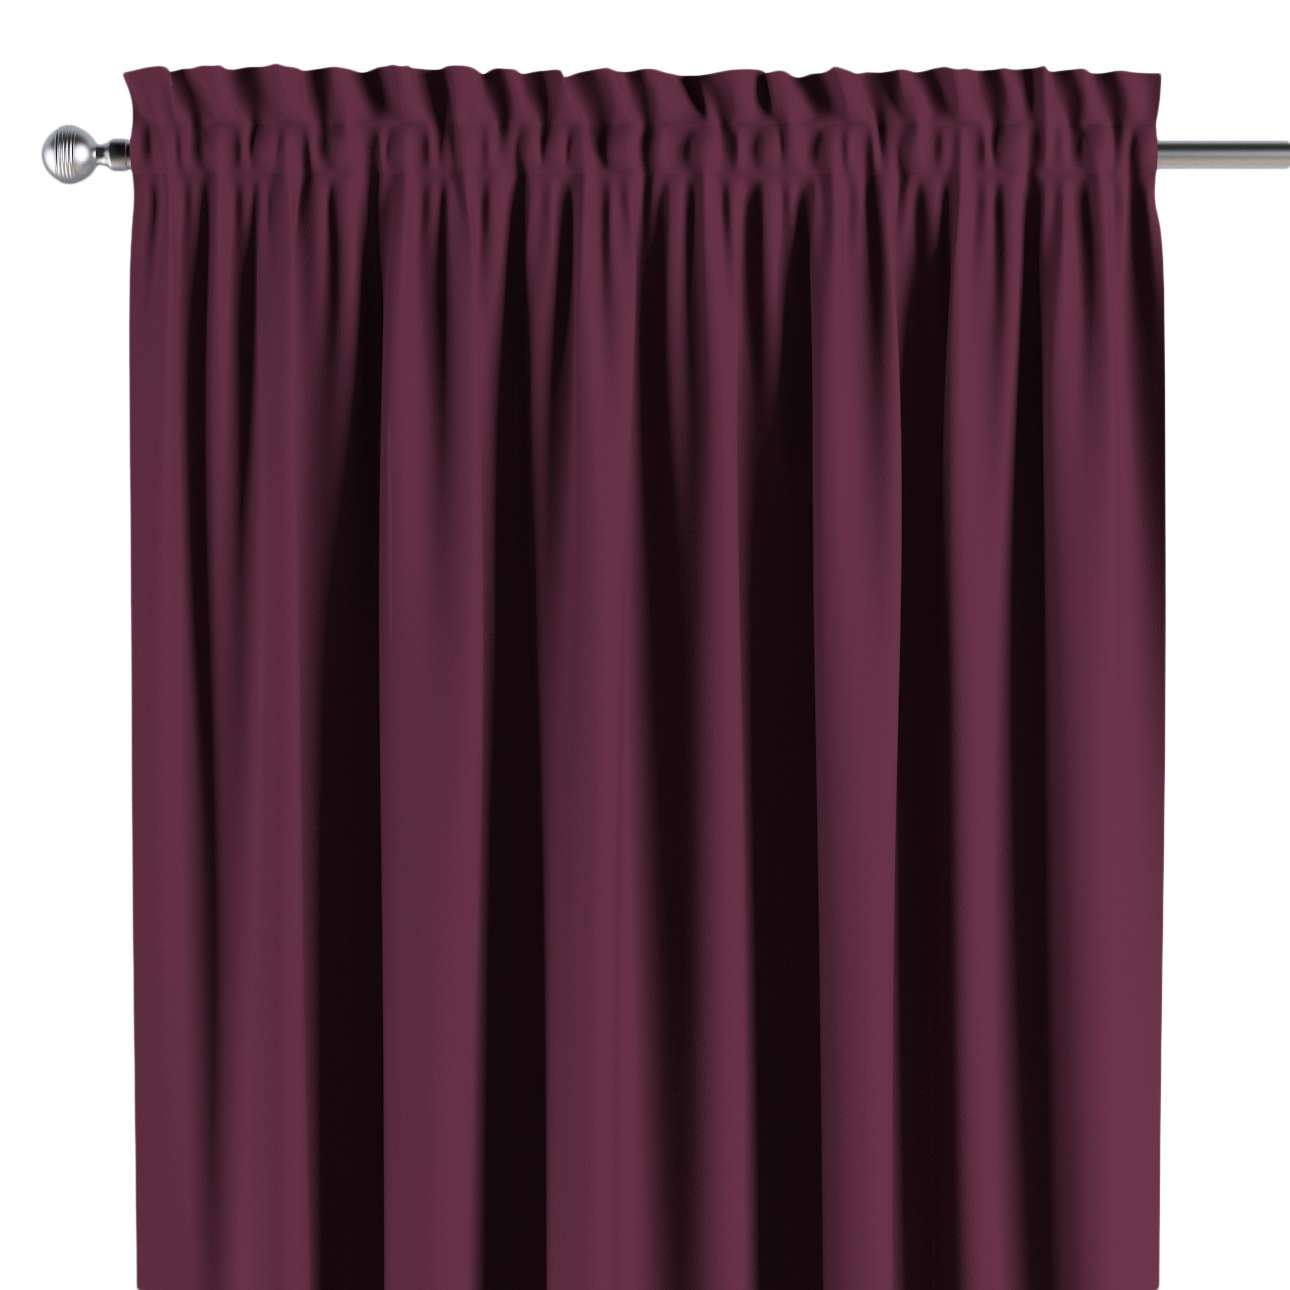 Blackout slot and frill curtains 140 × 260 cm (approx. 55 × 102 inch) in collection Blackout, fabric: 269-53